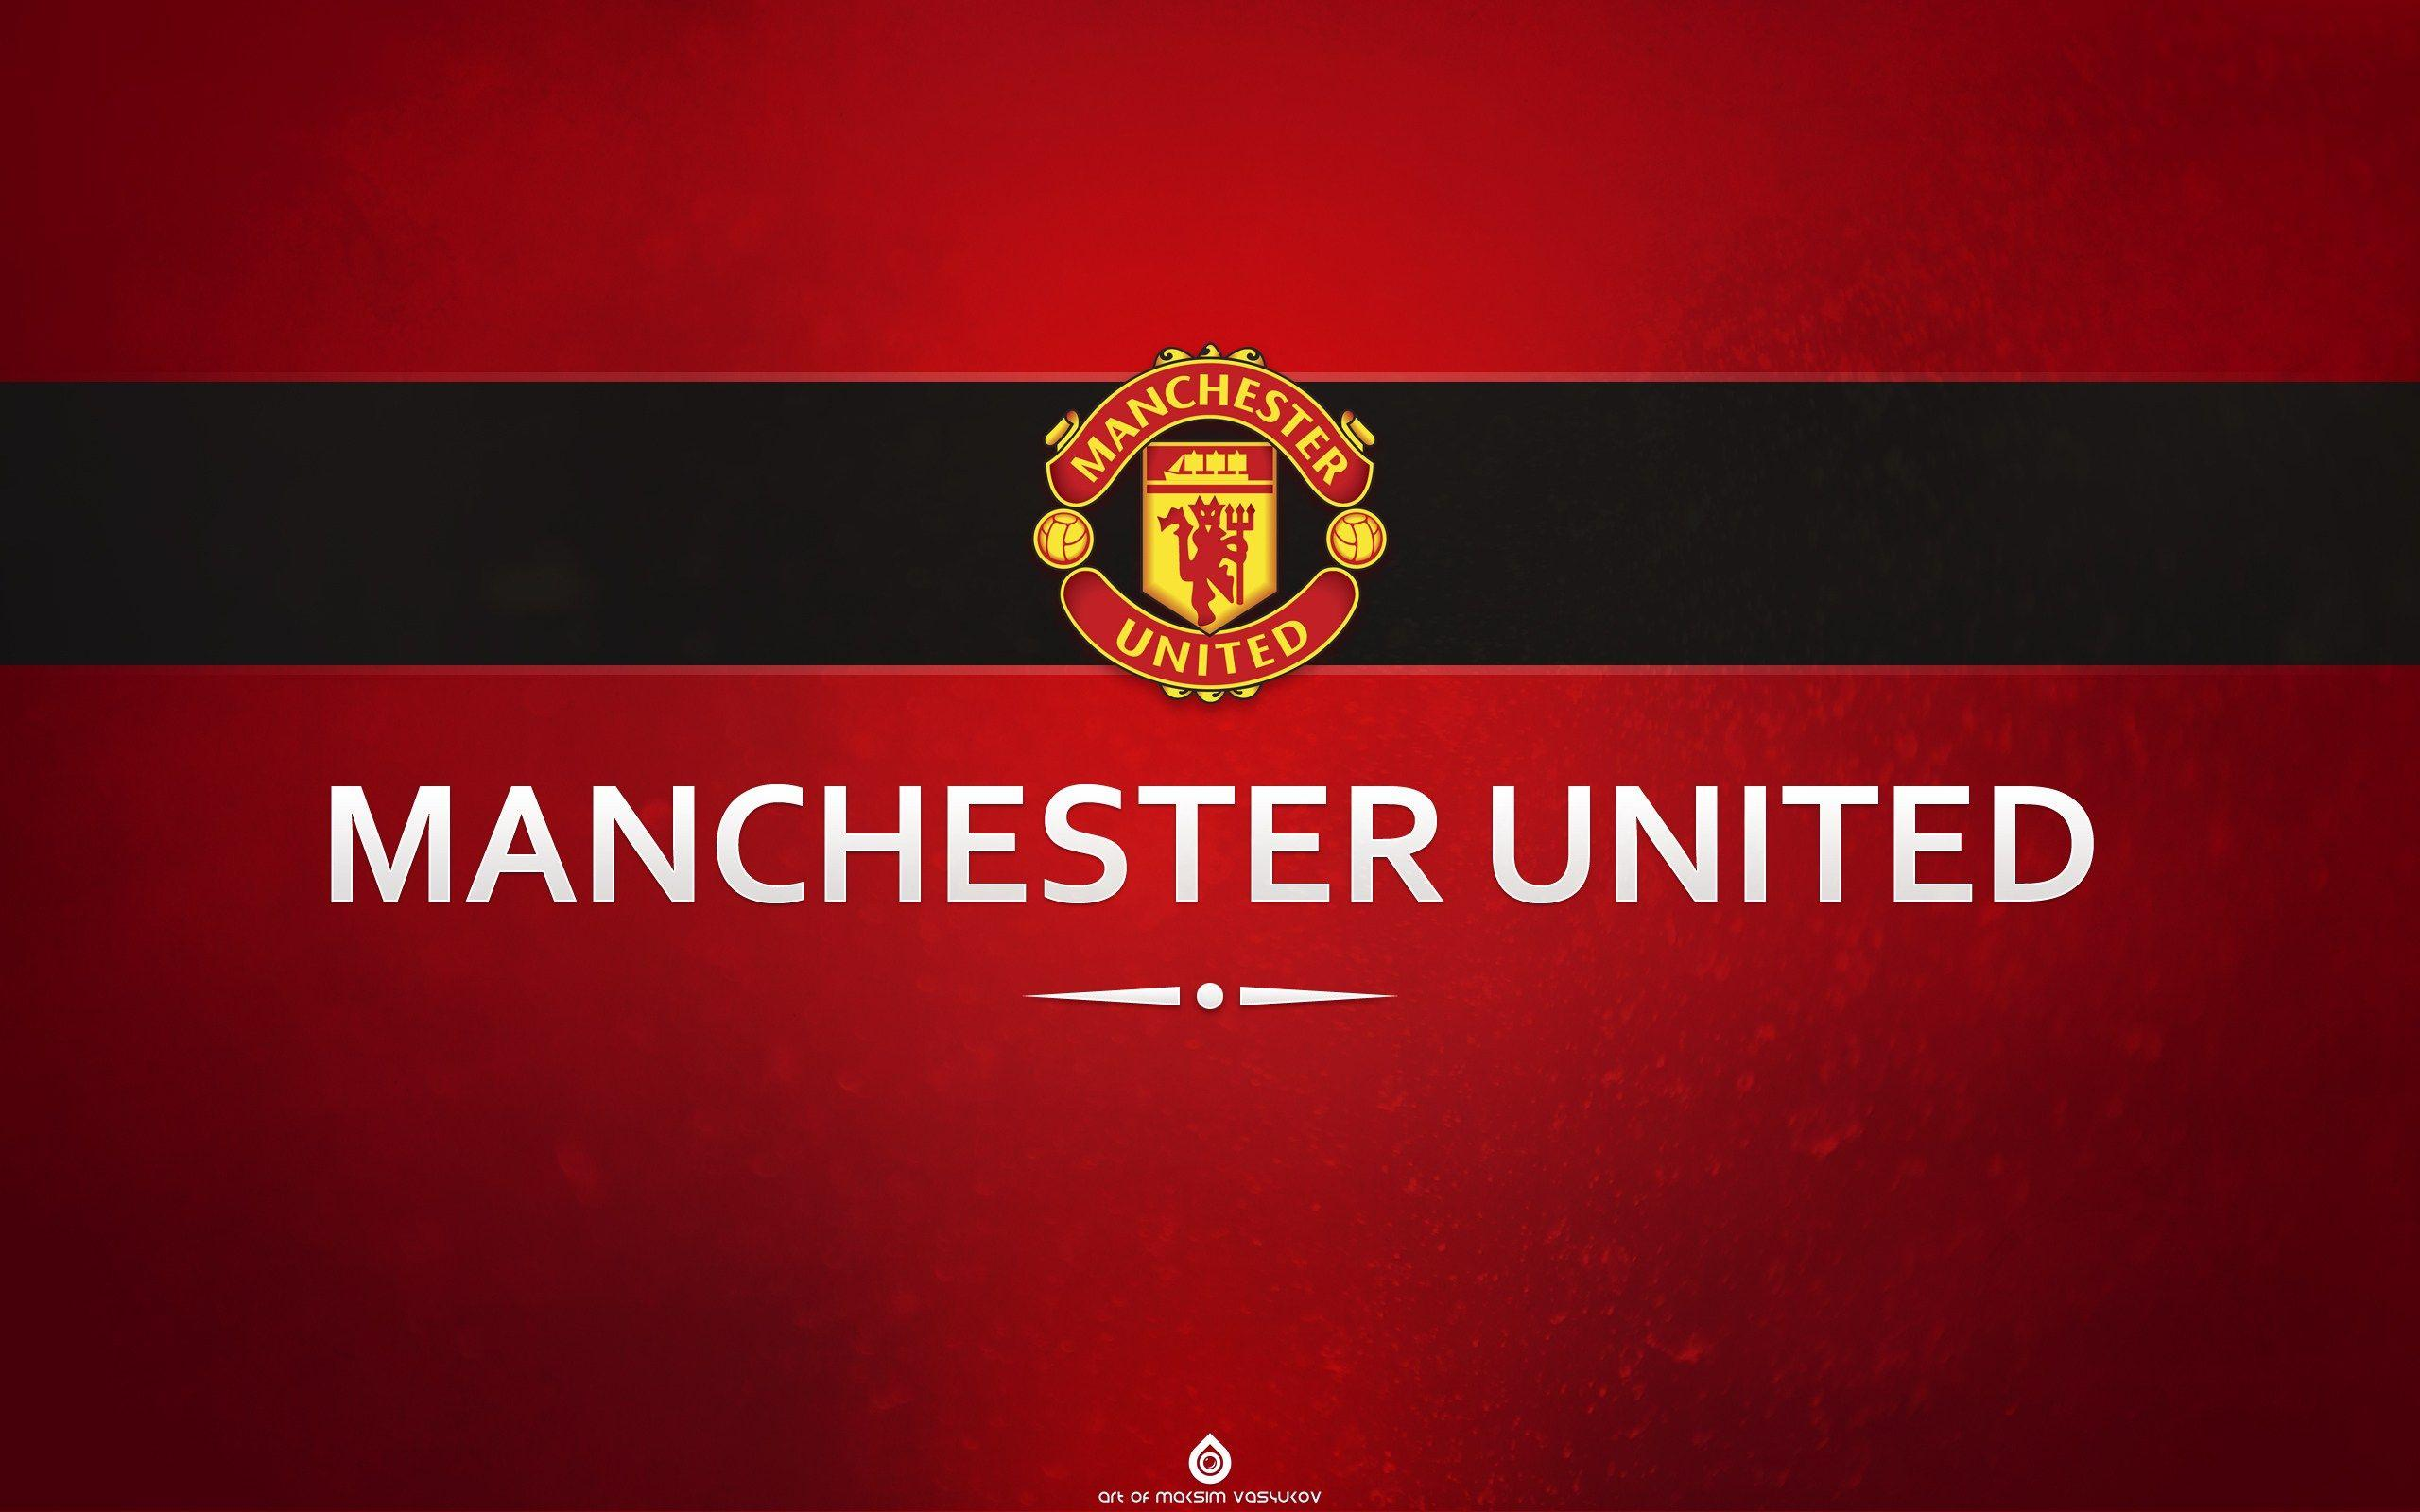 manchester united 2019 2020 wallpaper manchester united 2019 2020 wallpaper